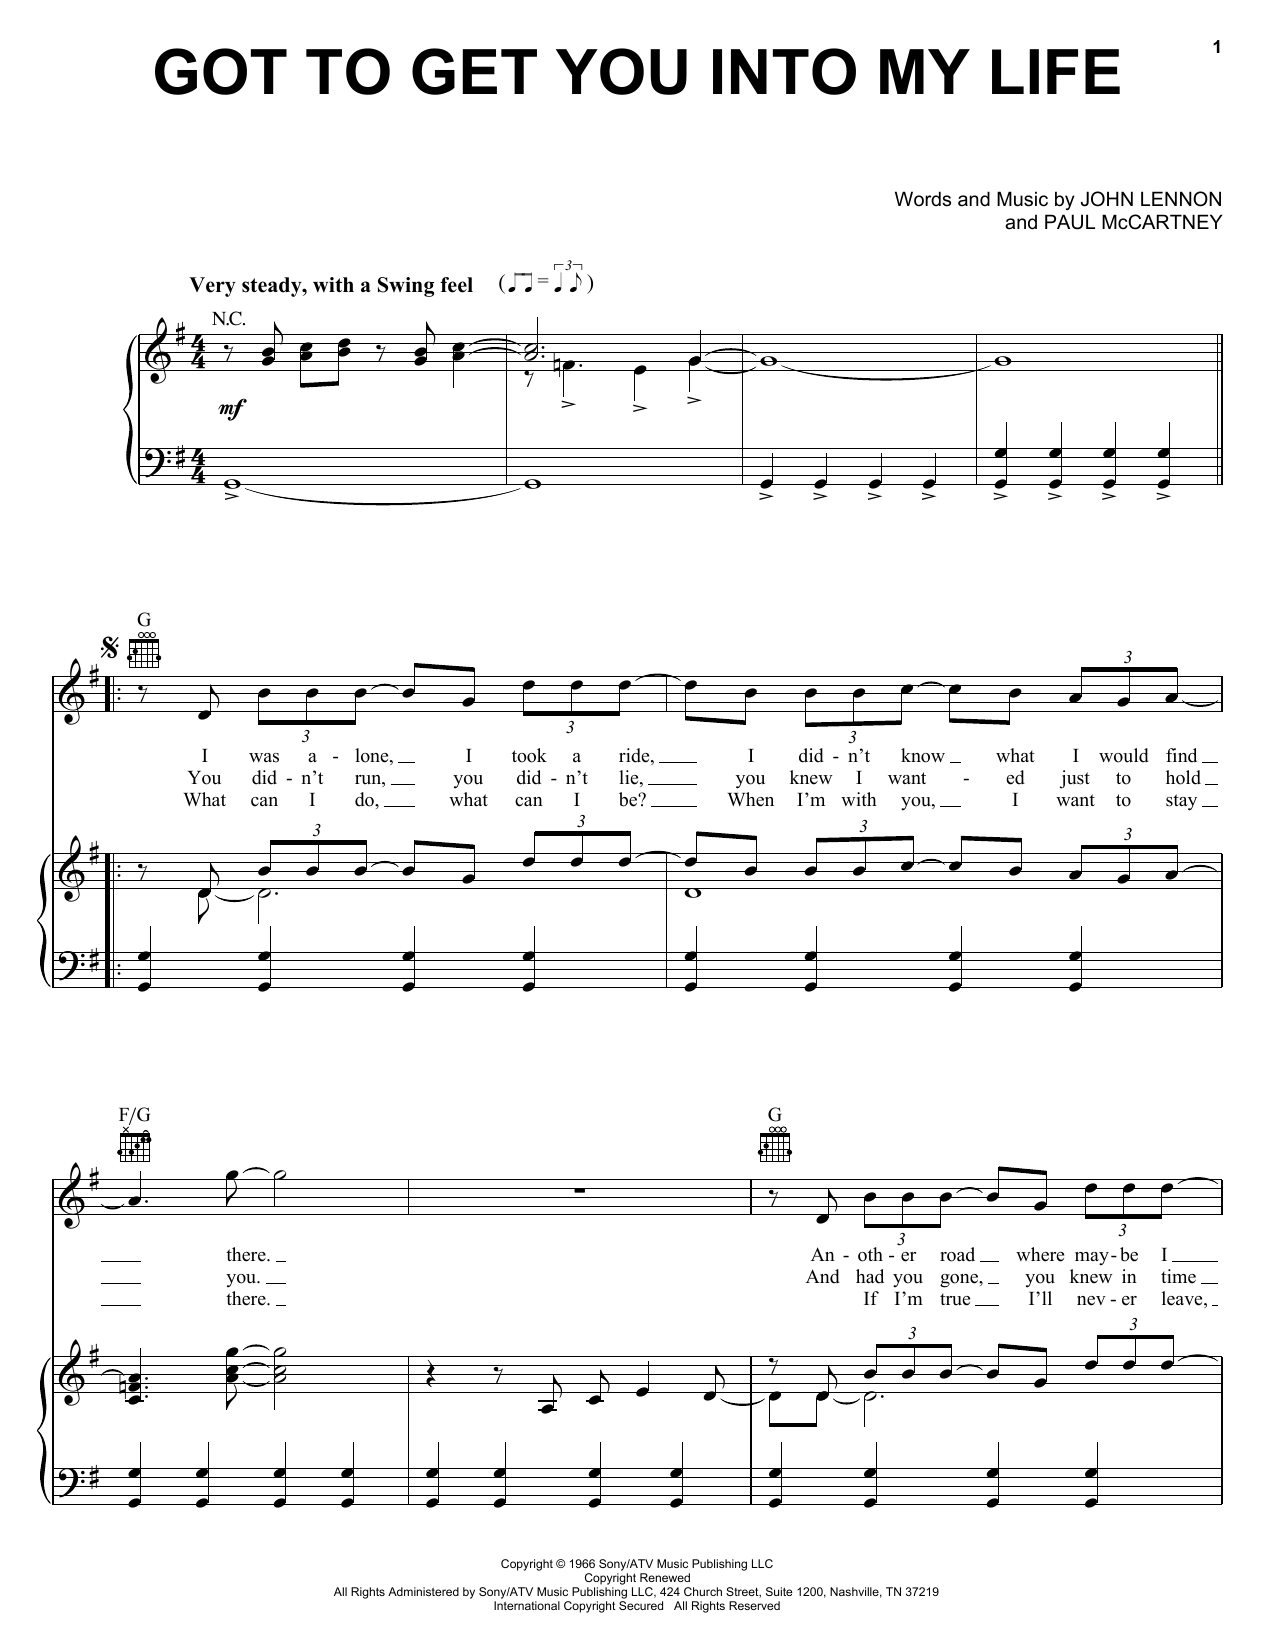 The Beatles 'Got To Get You Into My Life' Sheet Music Notes, Chords |  Download Printable Ukulele - SKU: 80982